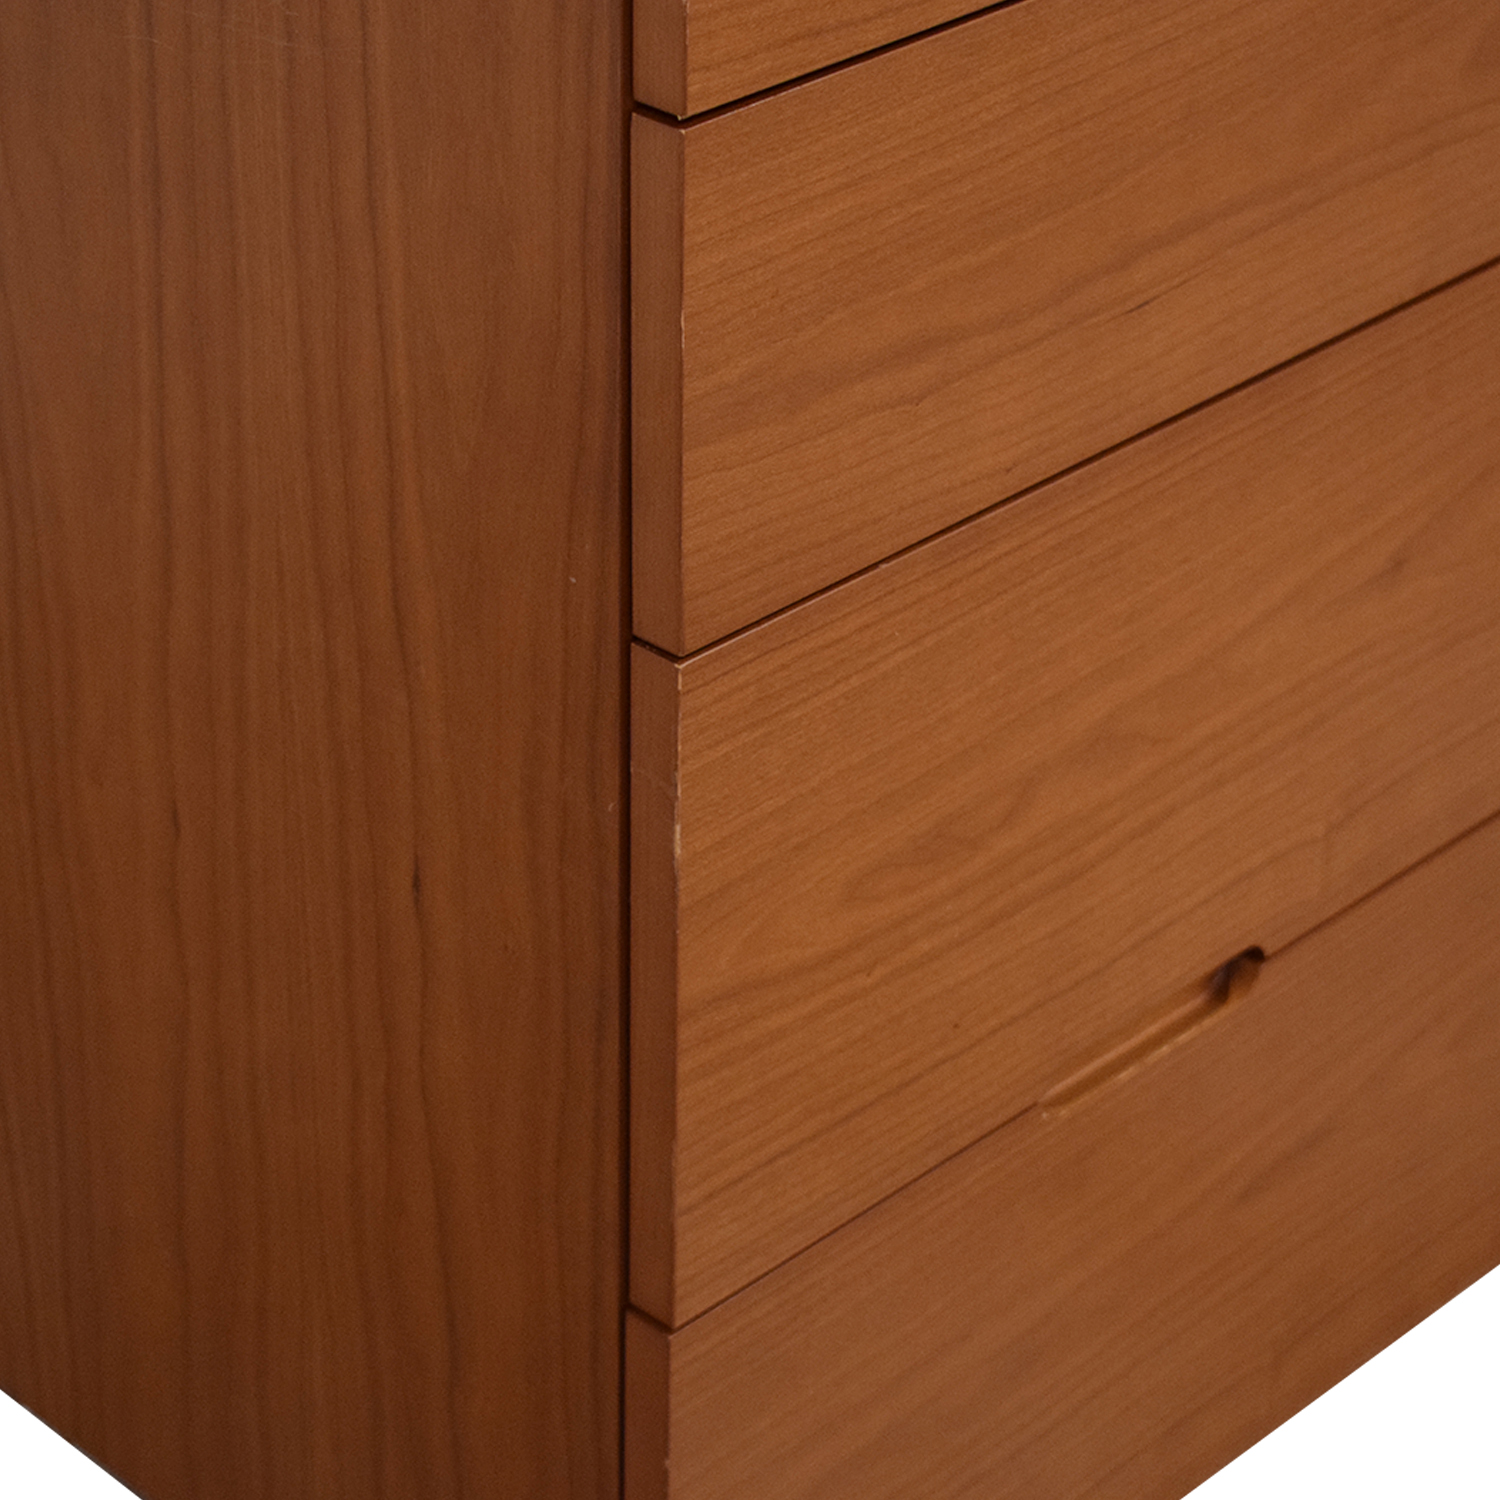 Mid Century Modern Chest of Drawers dimensions